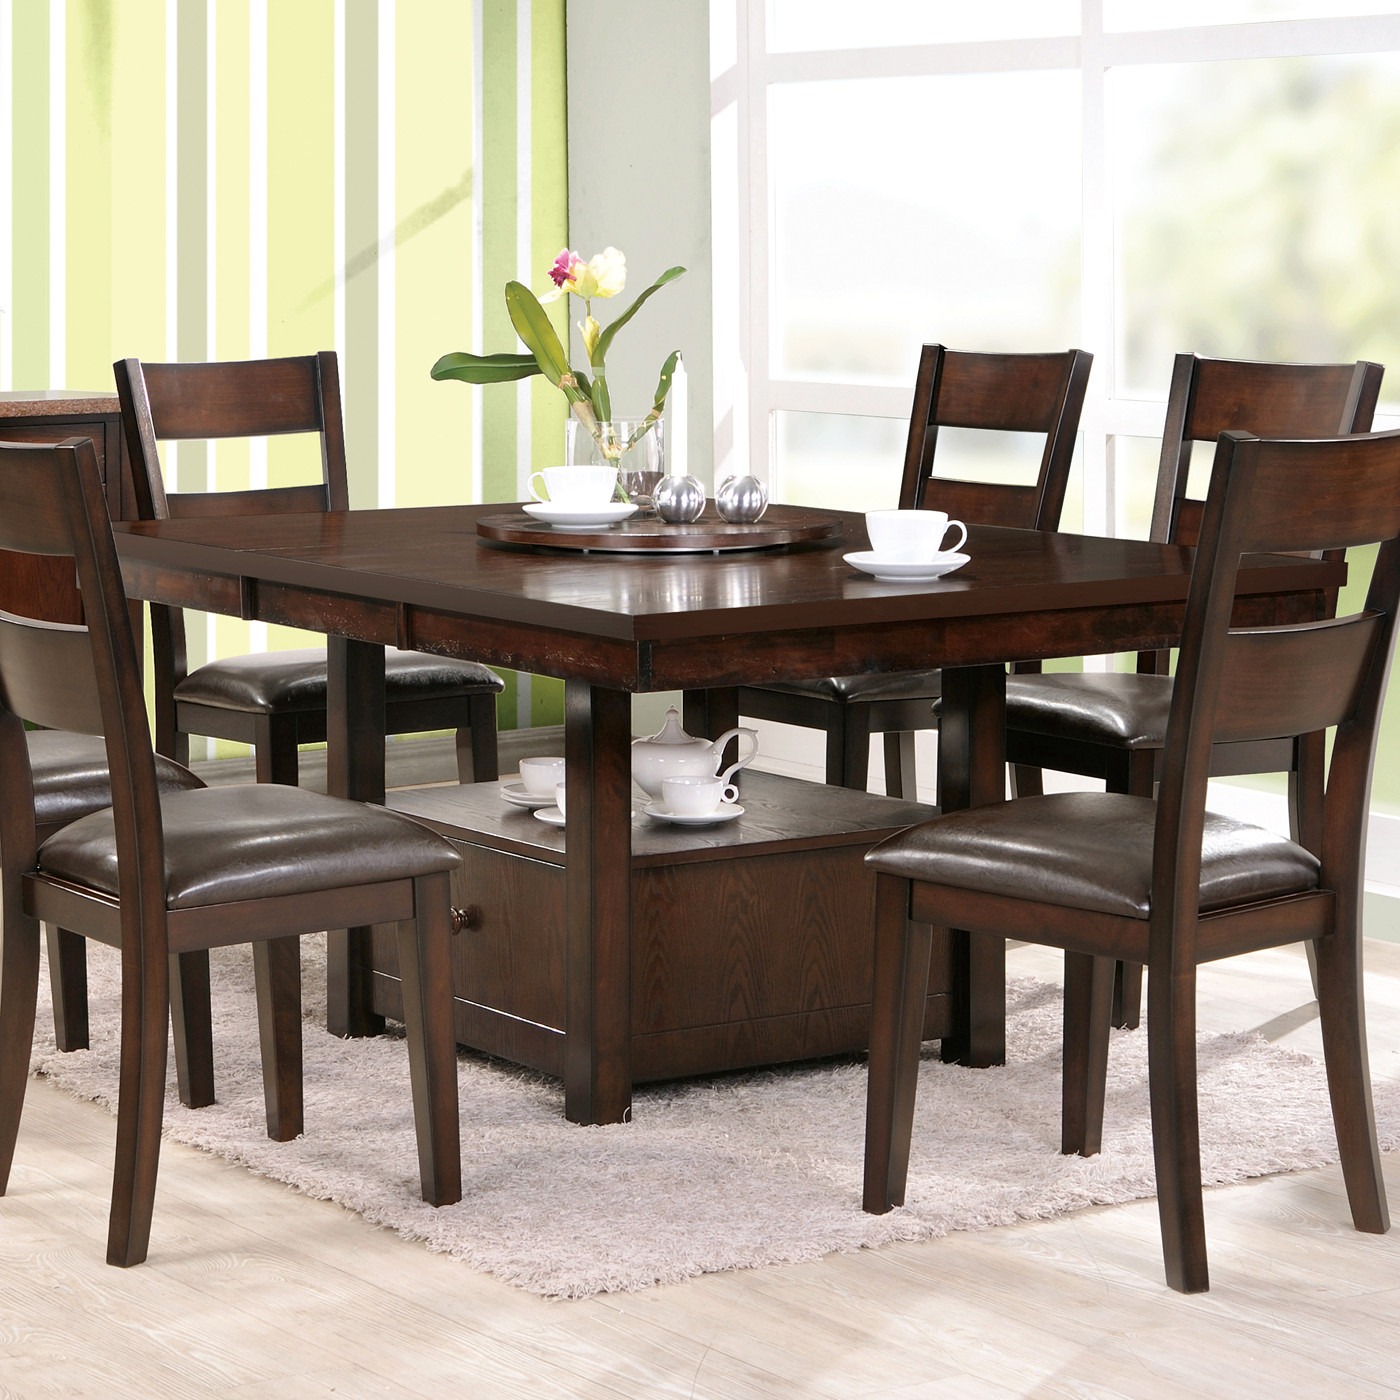 Best ideas about Dining Table With Storage . Save or Pin Steve Silver pany GB500P Gibson Adjustable Height Now.